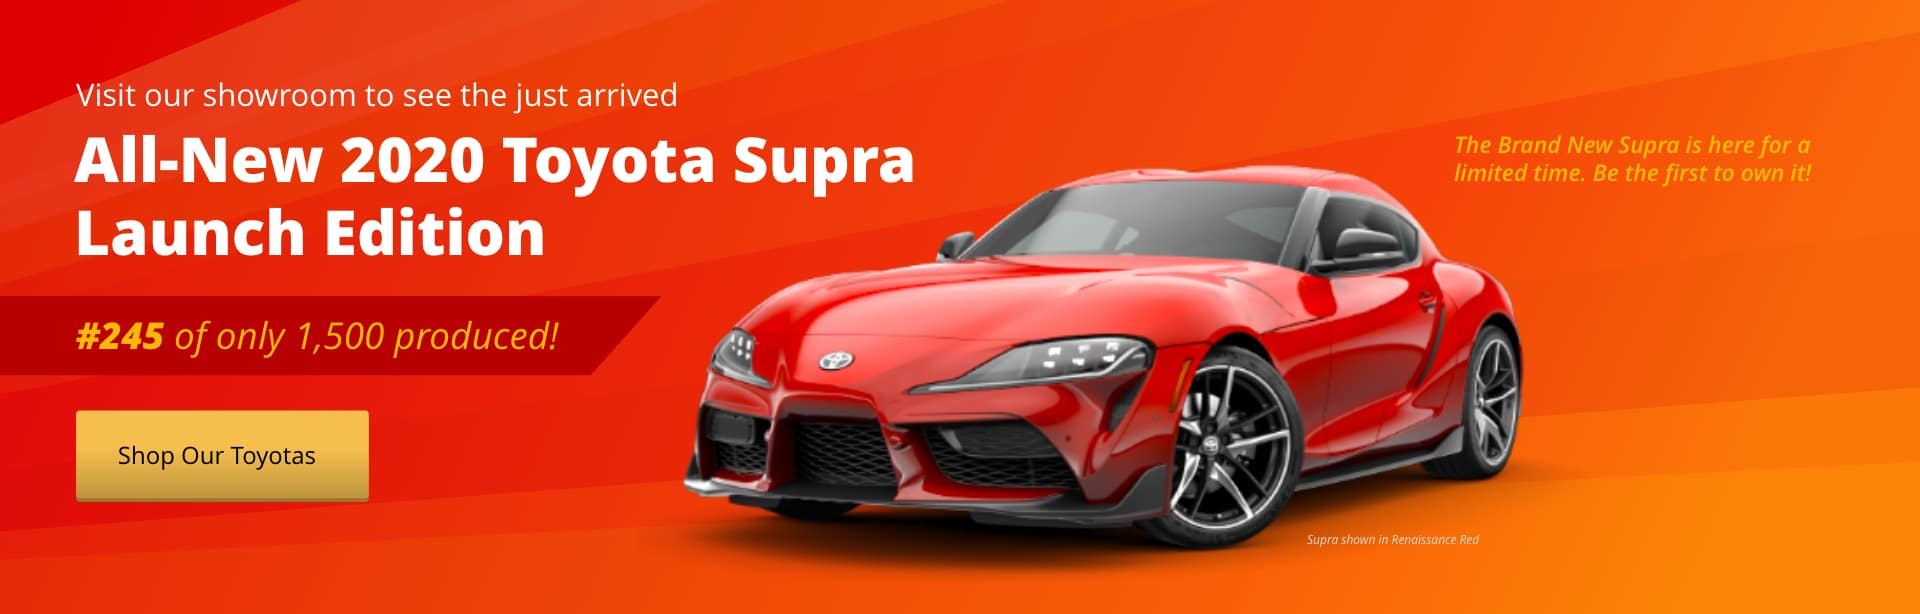 The All-New 2020 Supra Launch Edition has just arrived!